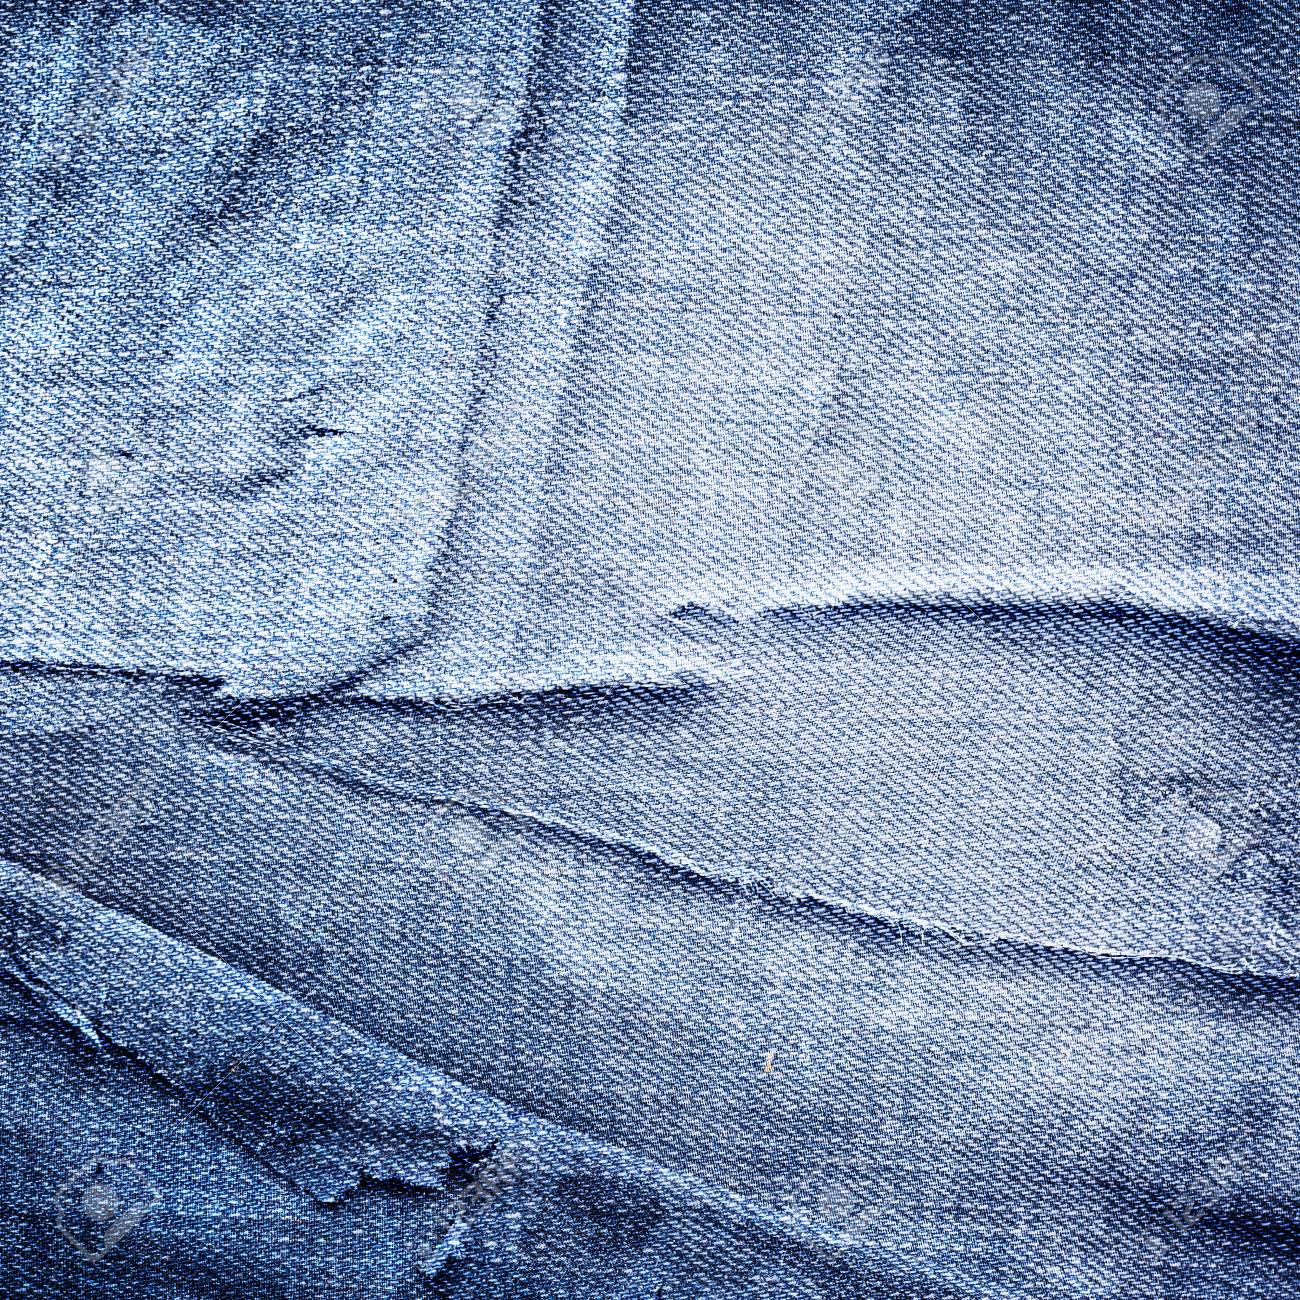 a42ca63a95d4 Abstract grunge jeans background with folds and scratches stock photo jpg  1300x1300 Abstract denim background